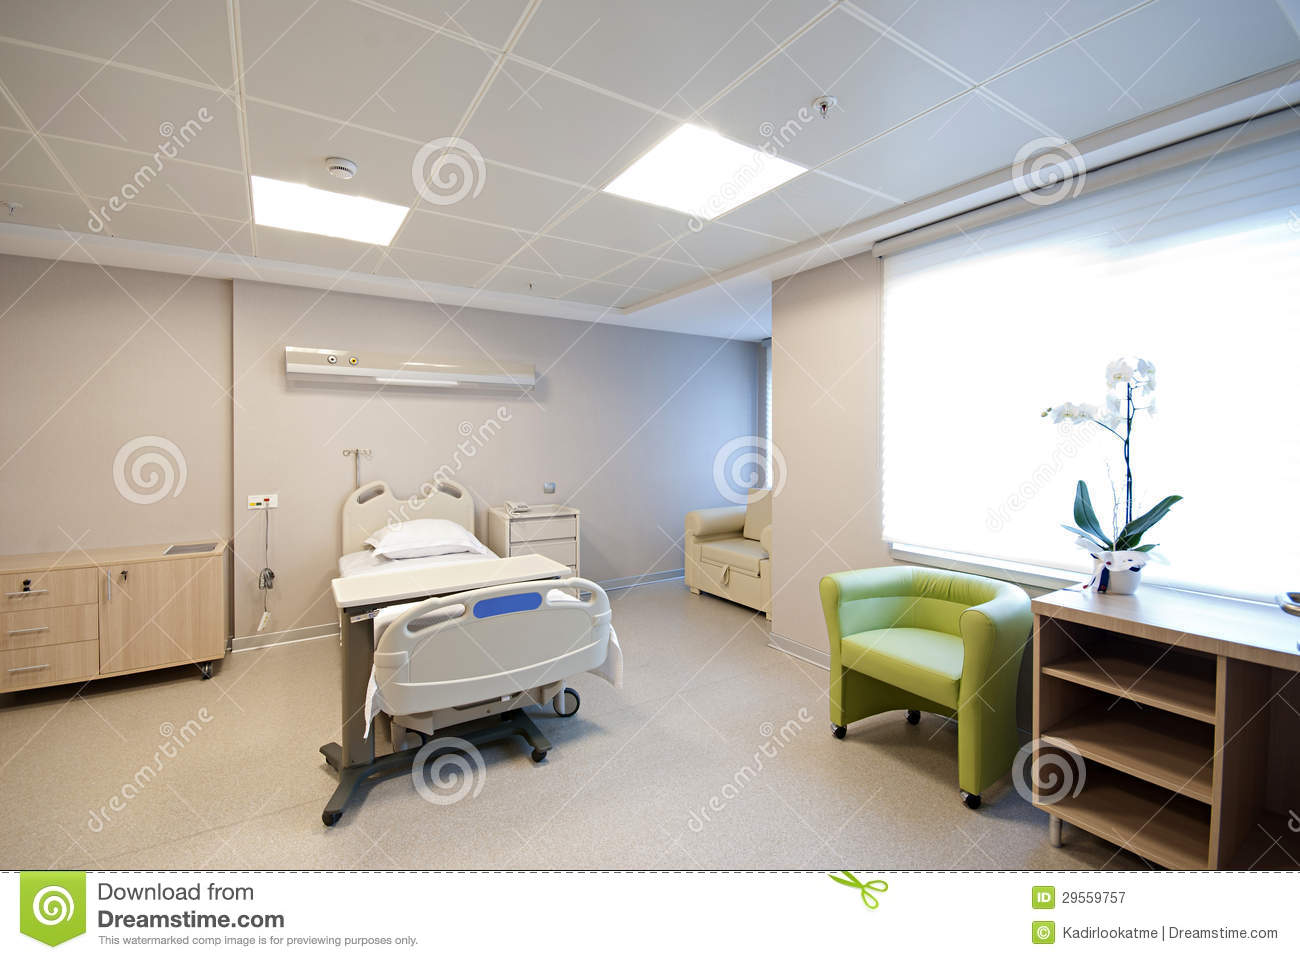 Private hospital room interior stock image image 29559757 for Room interior images